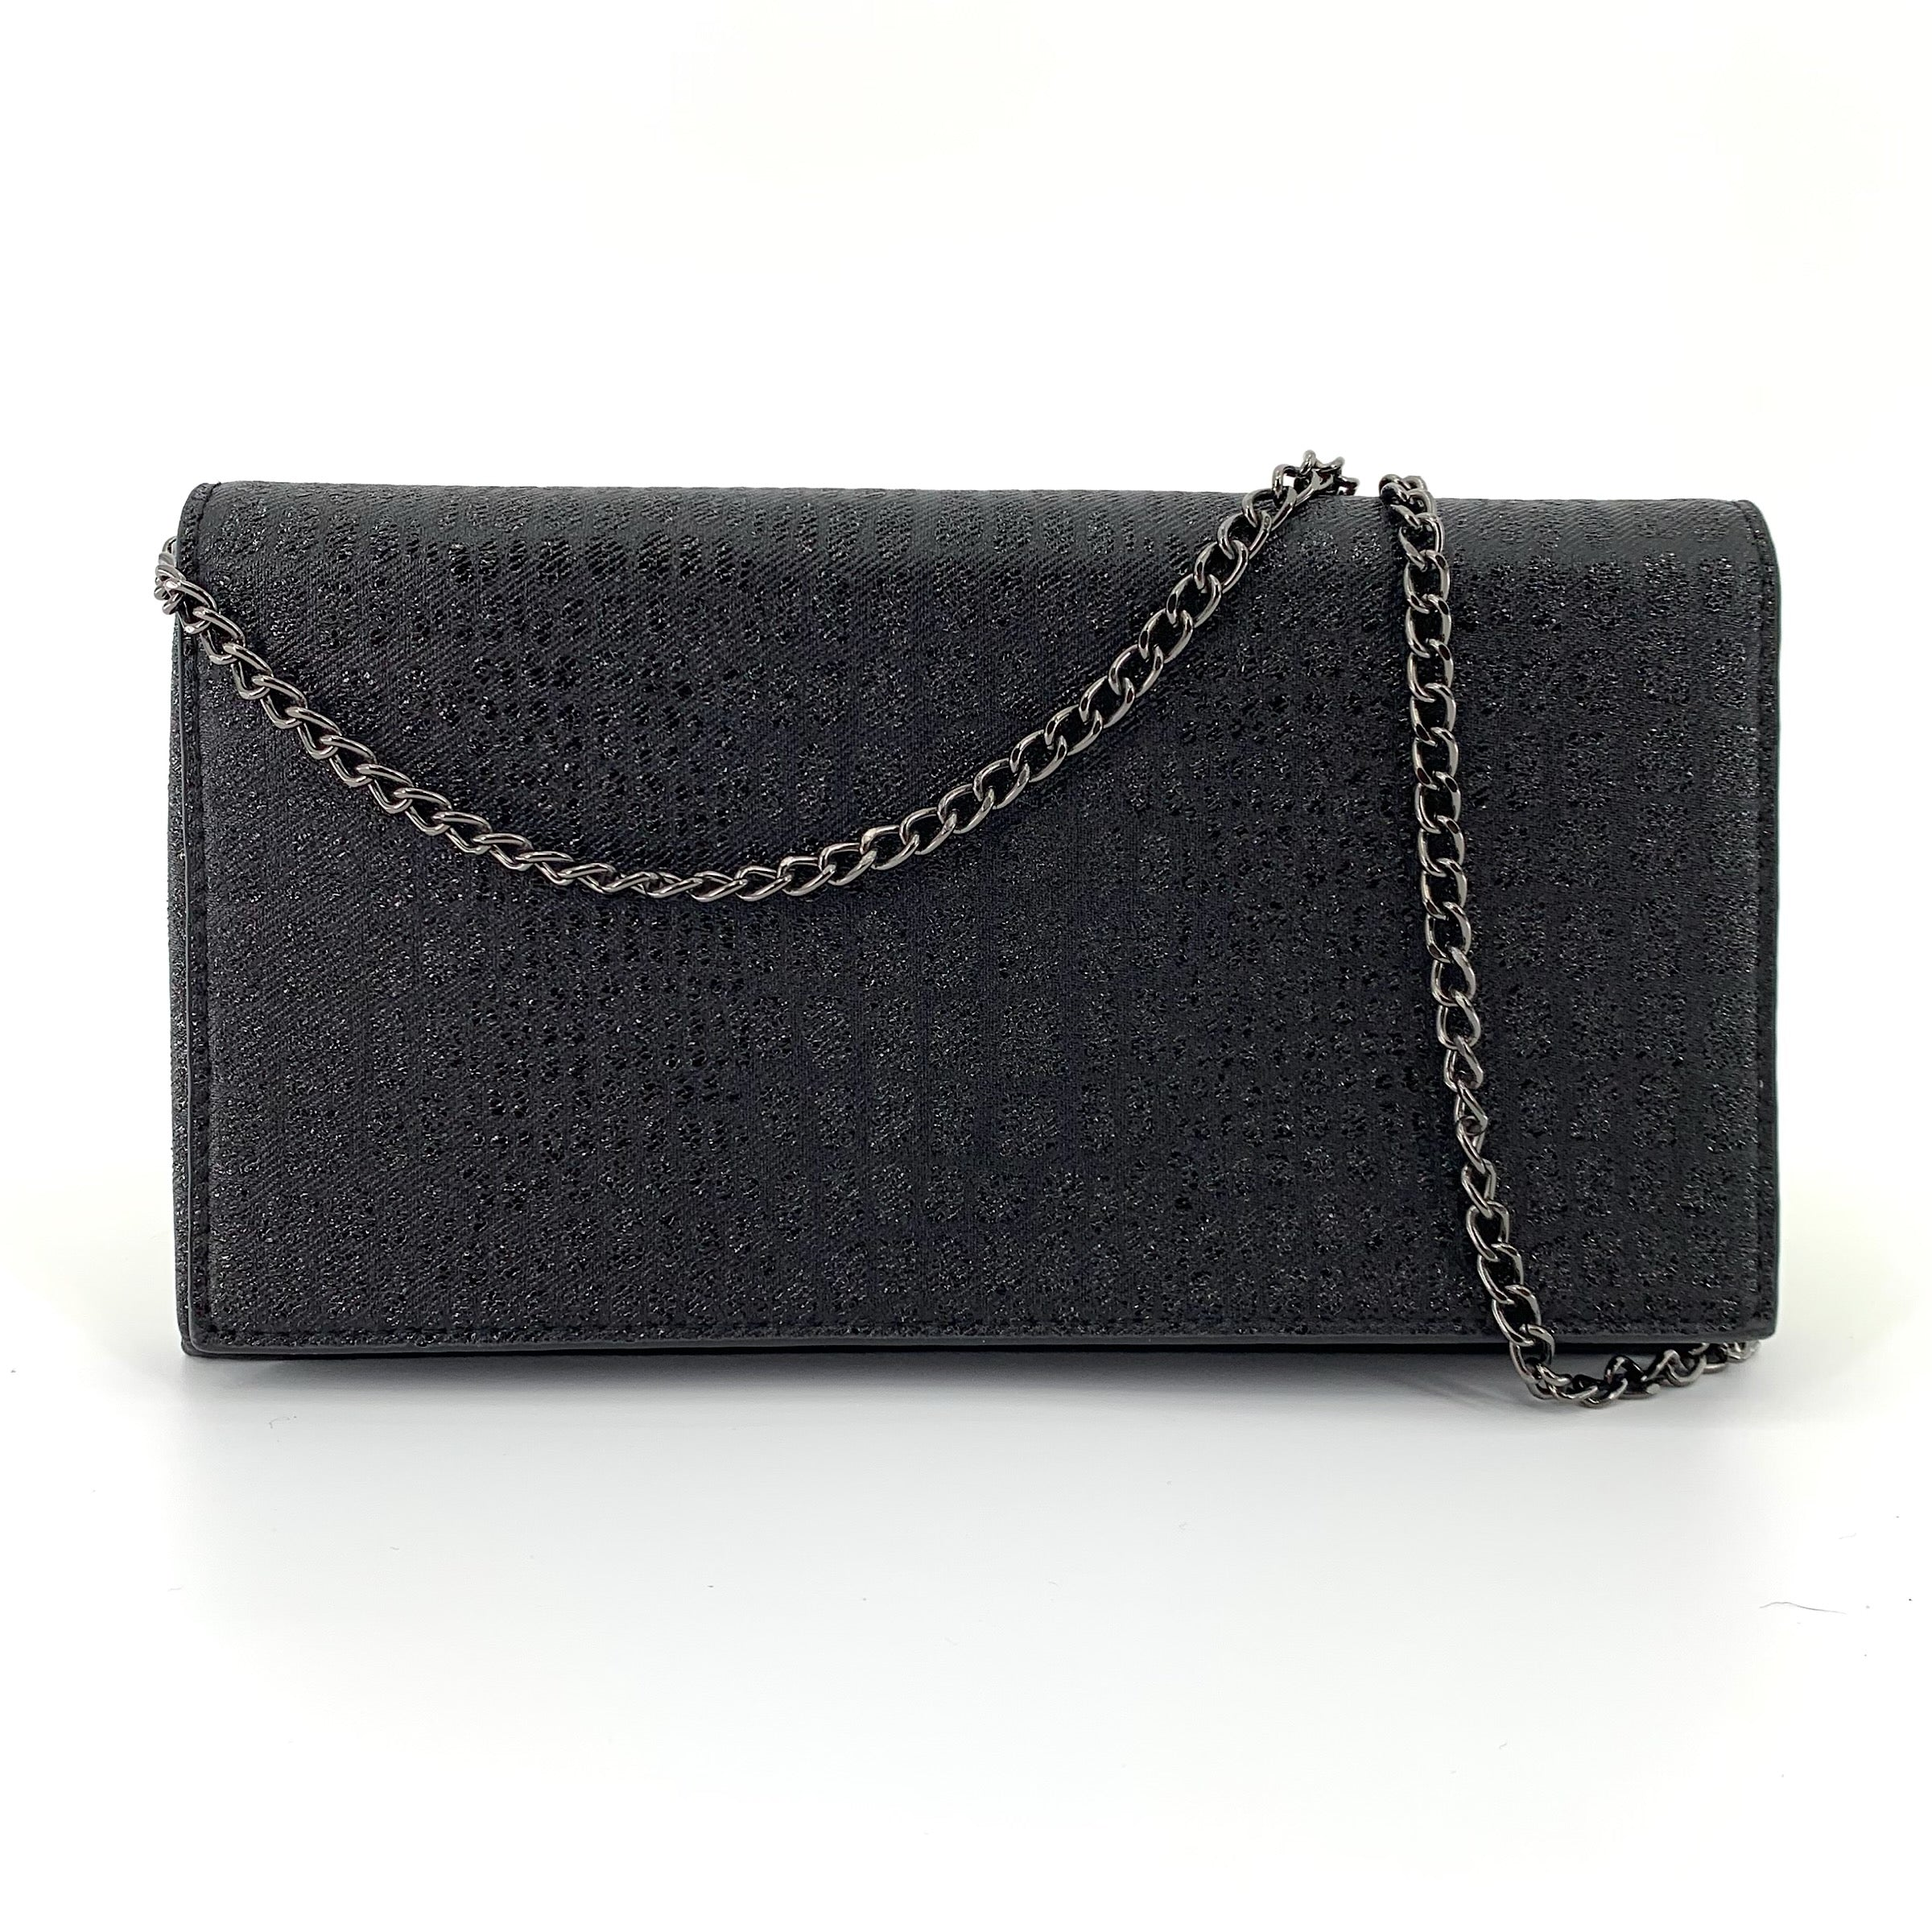 The Metallic Embossed Croco Clutch in Black